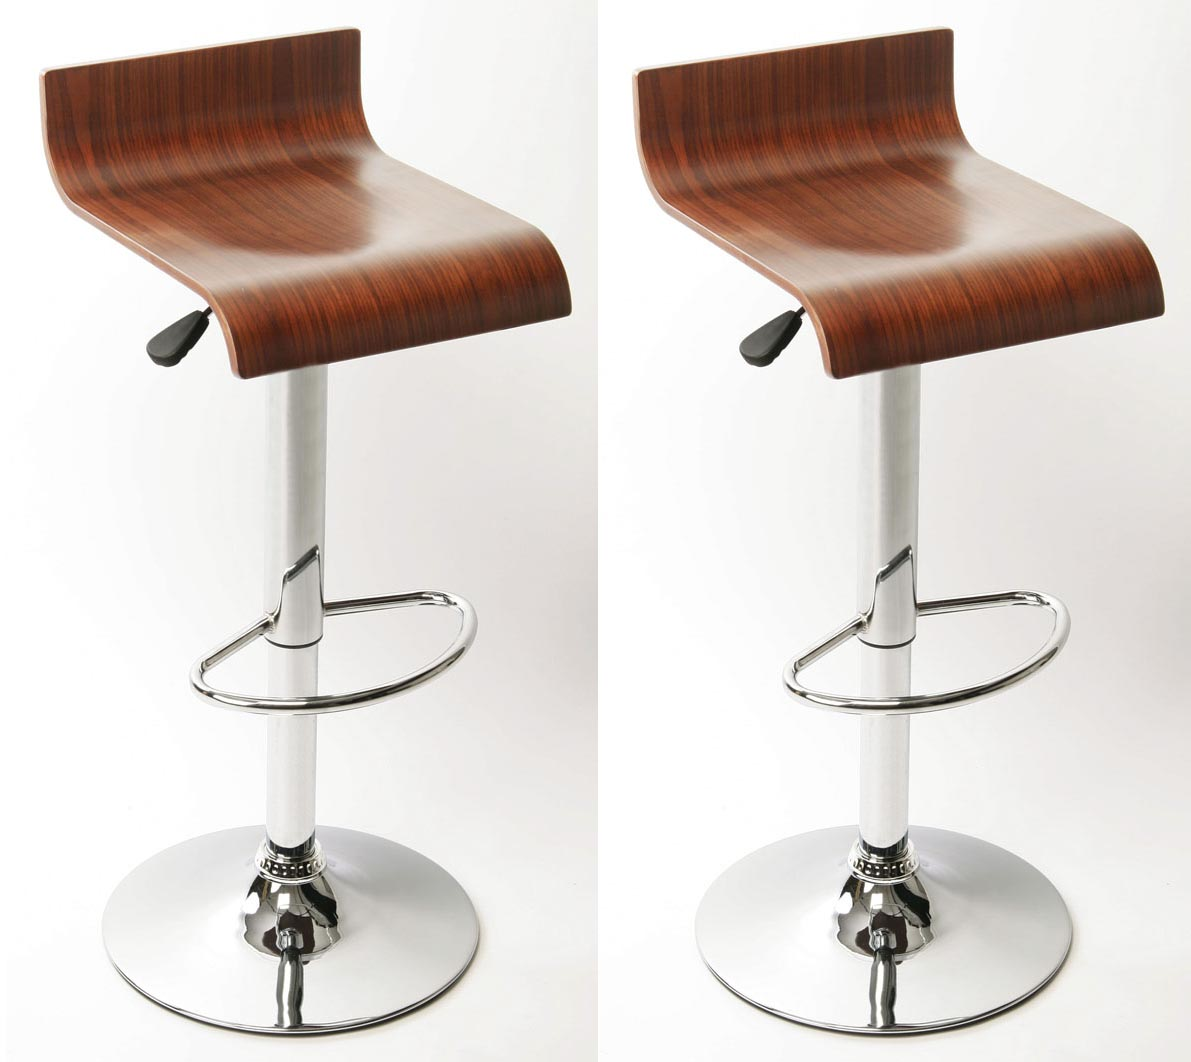 Doppelpack barhocker wood design holz barstuhl lounge for Barhocker holz